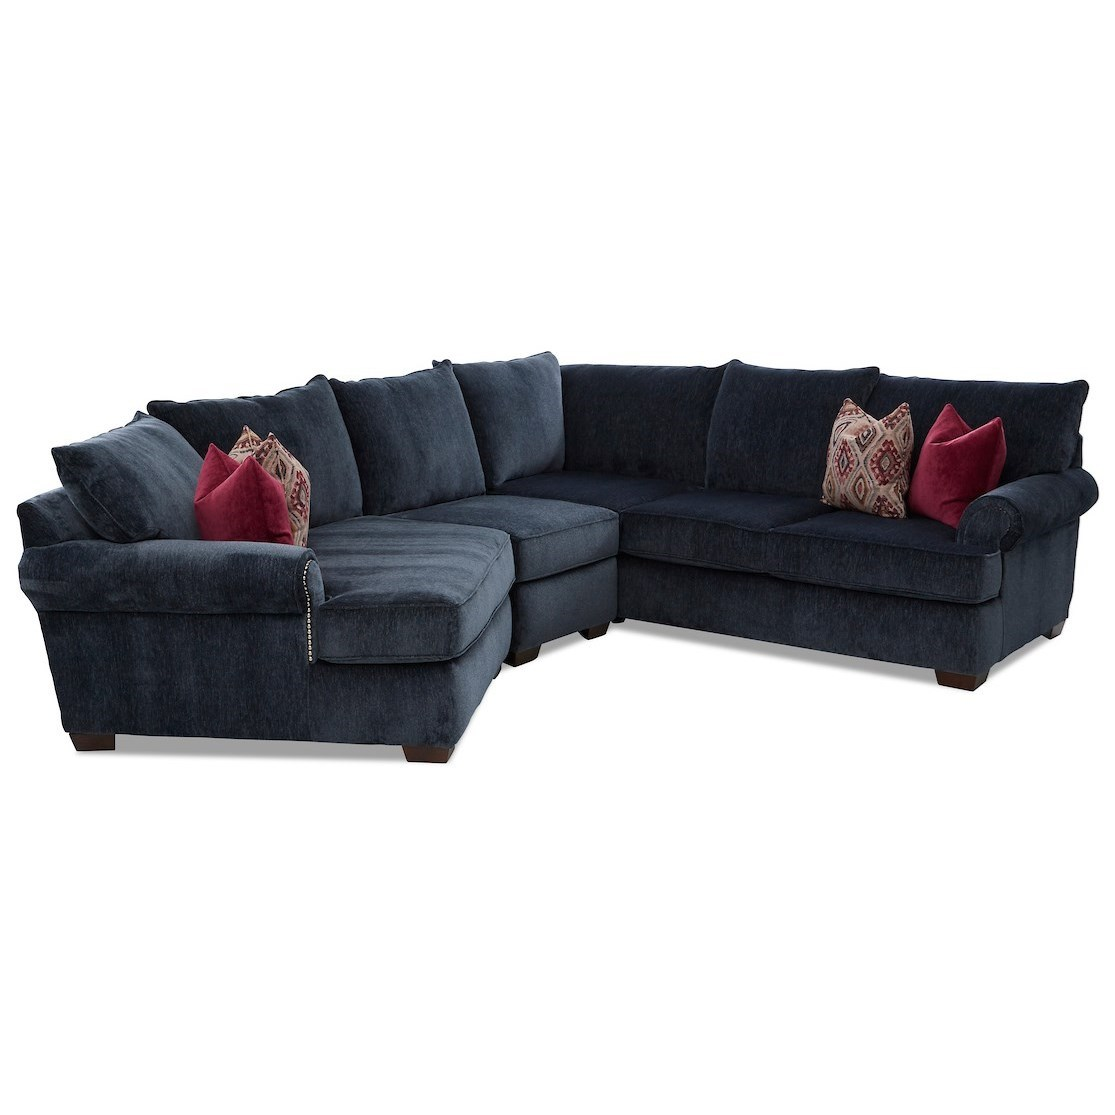 Ginger 4-Seat Sectional Sofa w/ LAF Cuddler Chair by Klaussner at Johnny Janosik